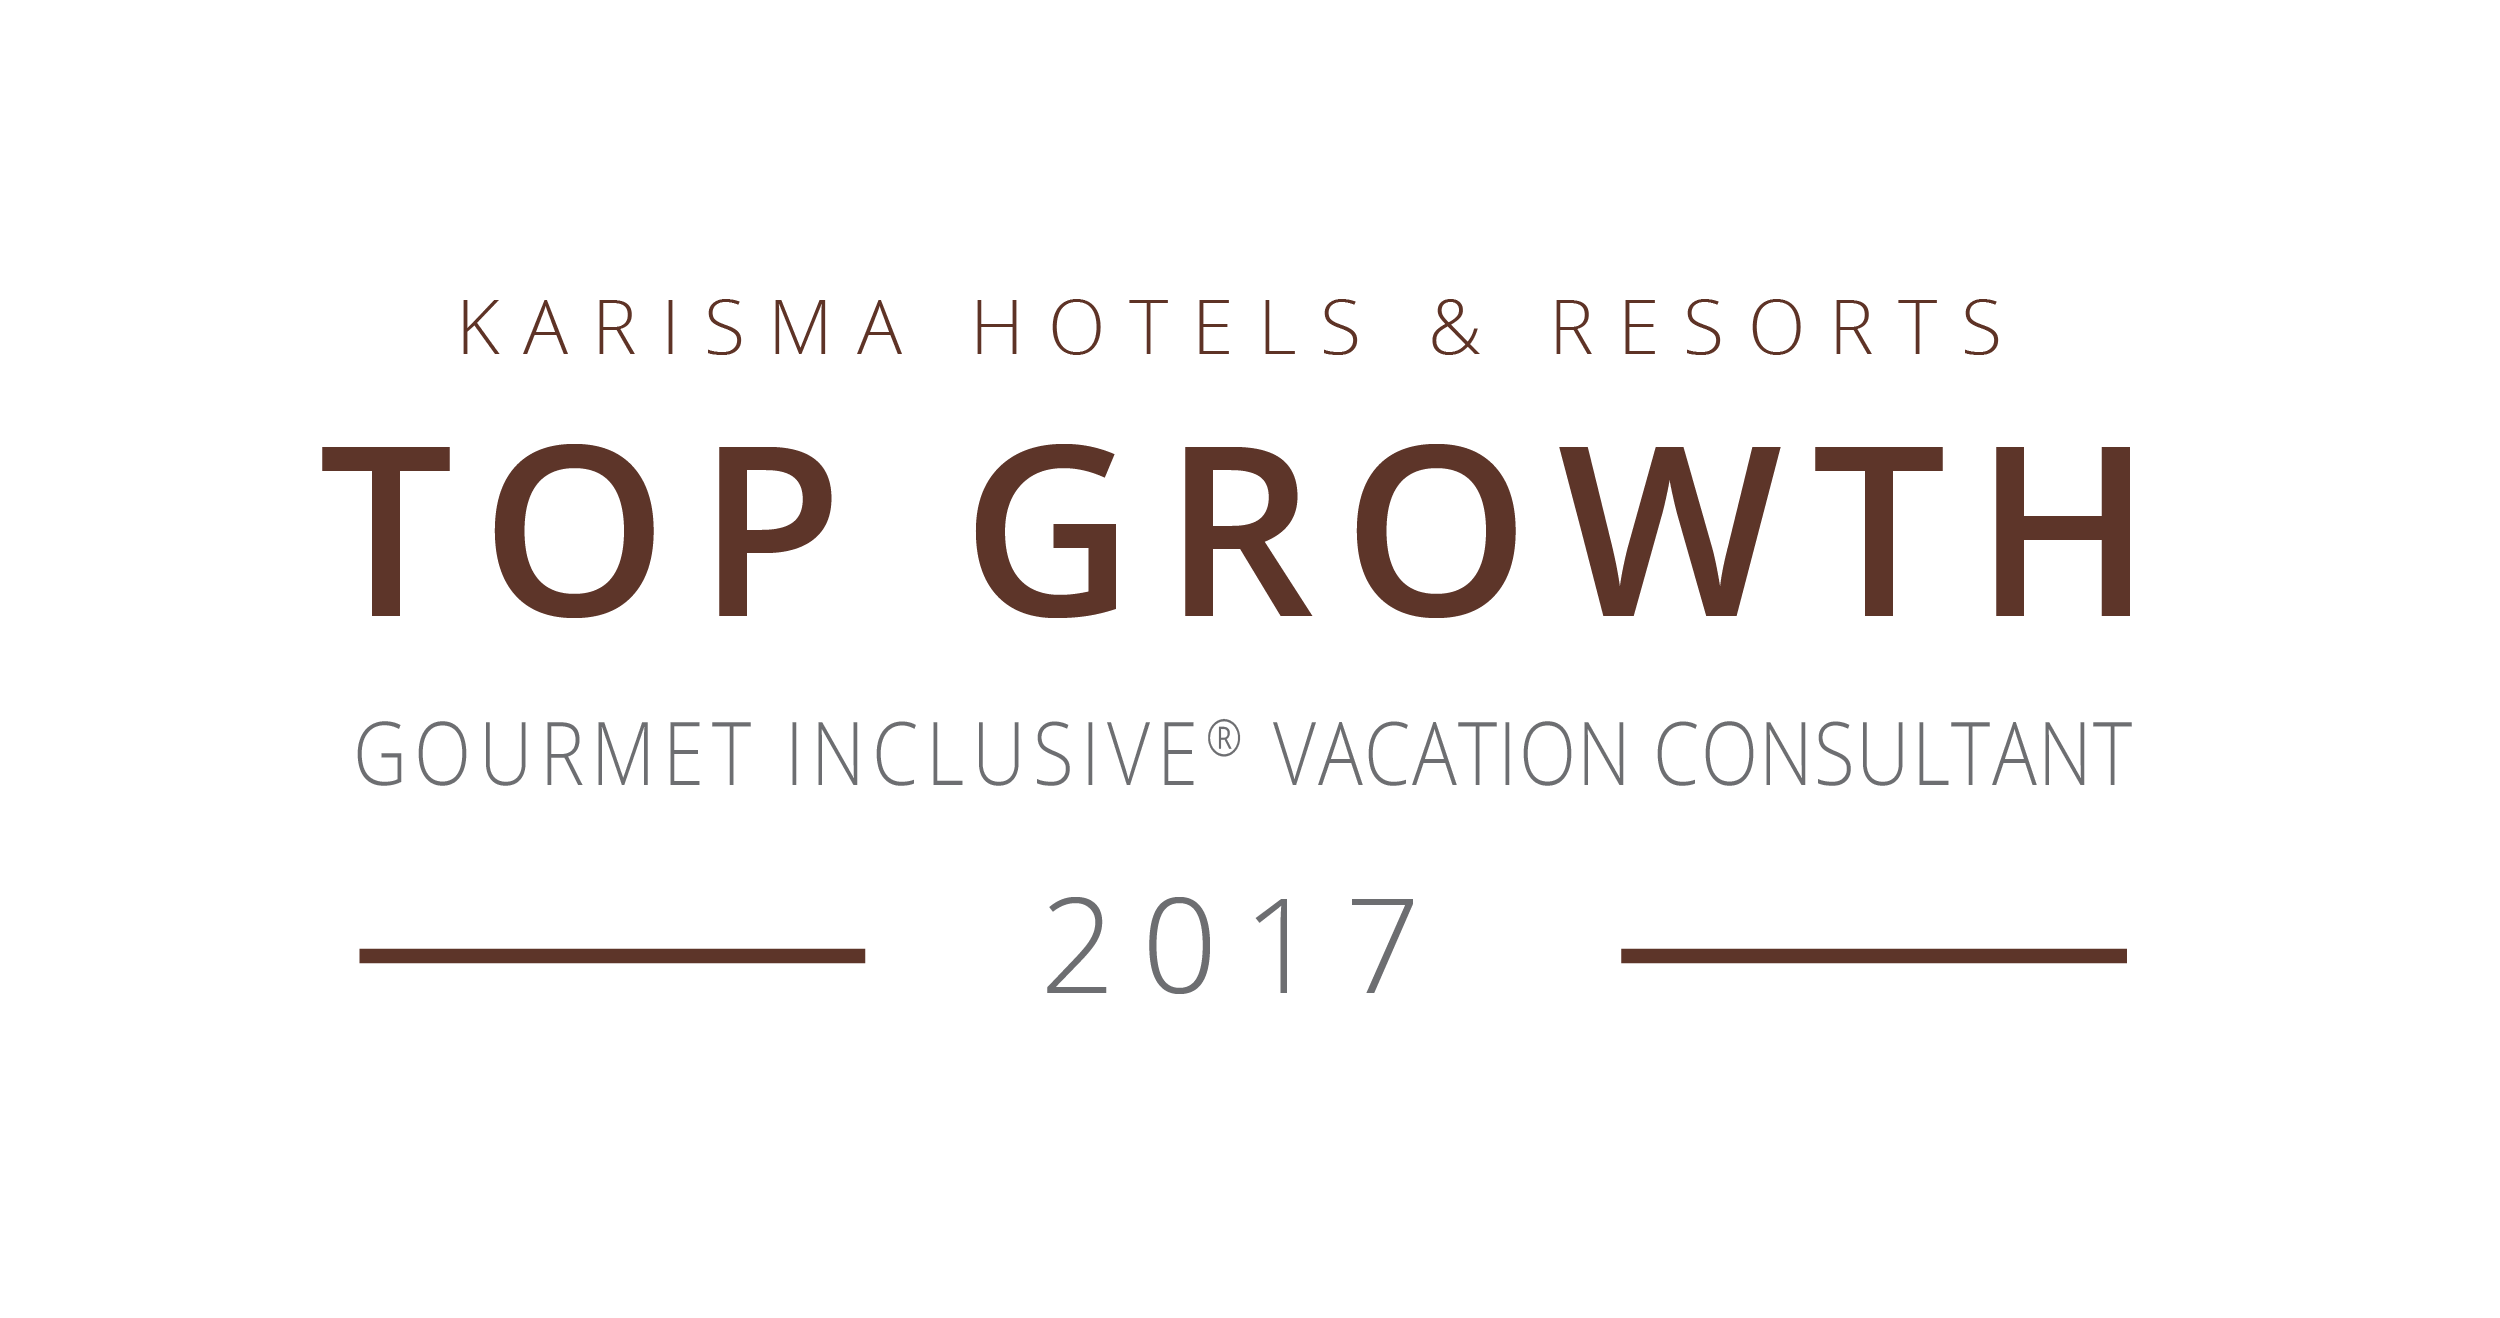 GIVC Logos con Karisma_Top Growth GIVC 2017.png